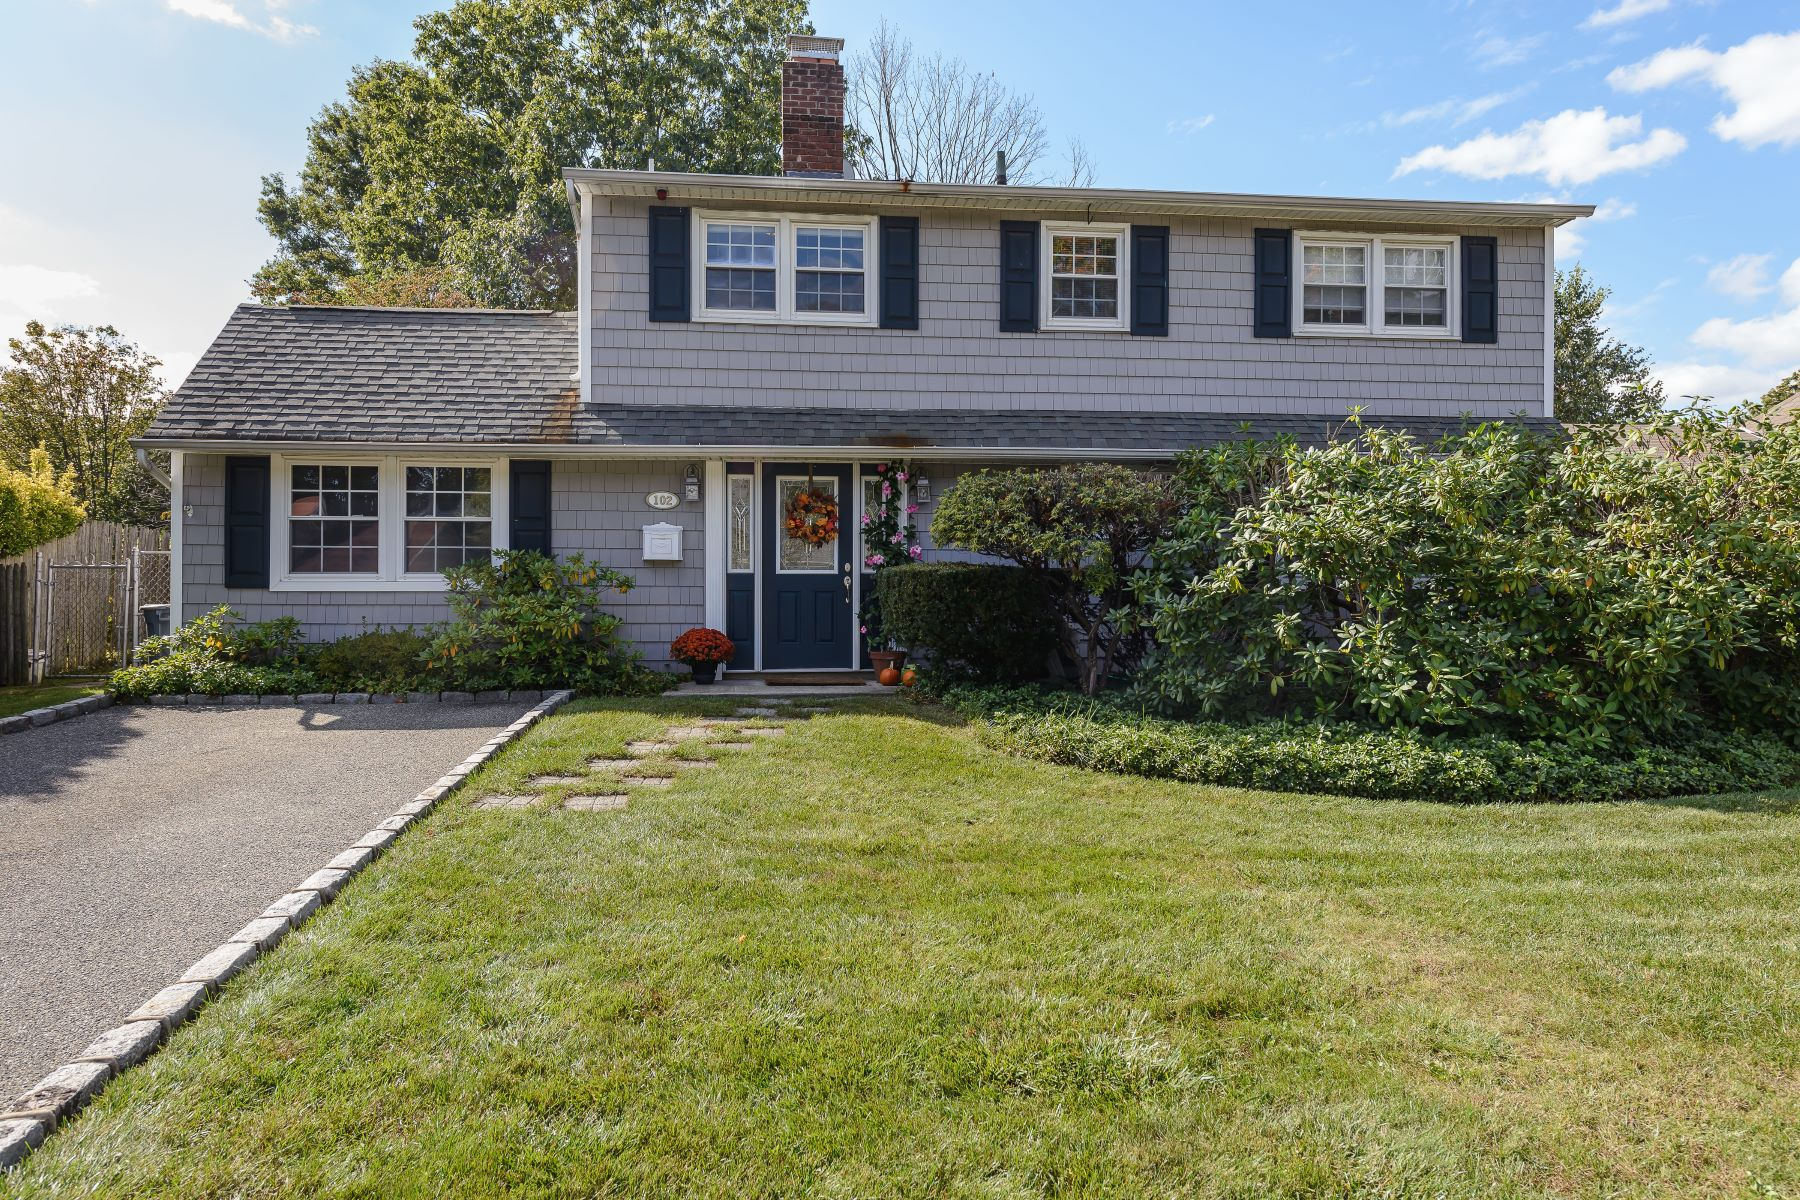 Single Family Home for Sale at 102 Cypress Ln , Westbury, NY 11590 102 Cypress Ln, Westbury, New York, 11590 United States